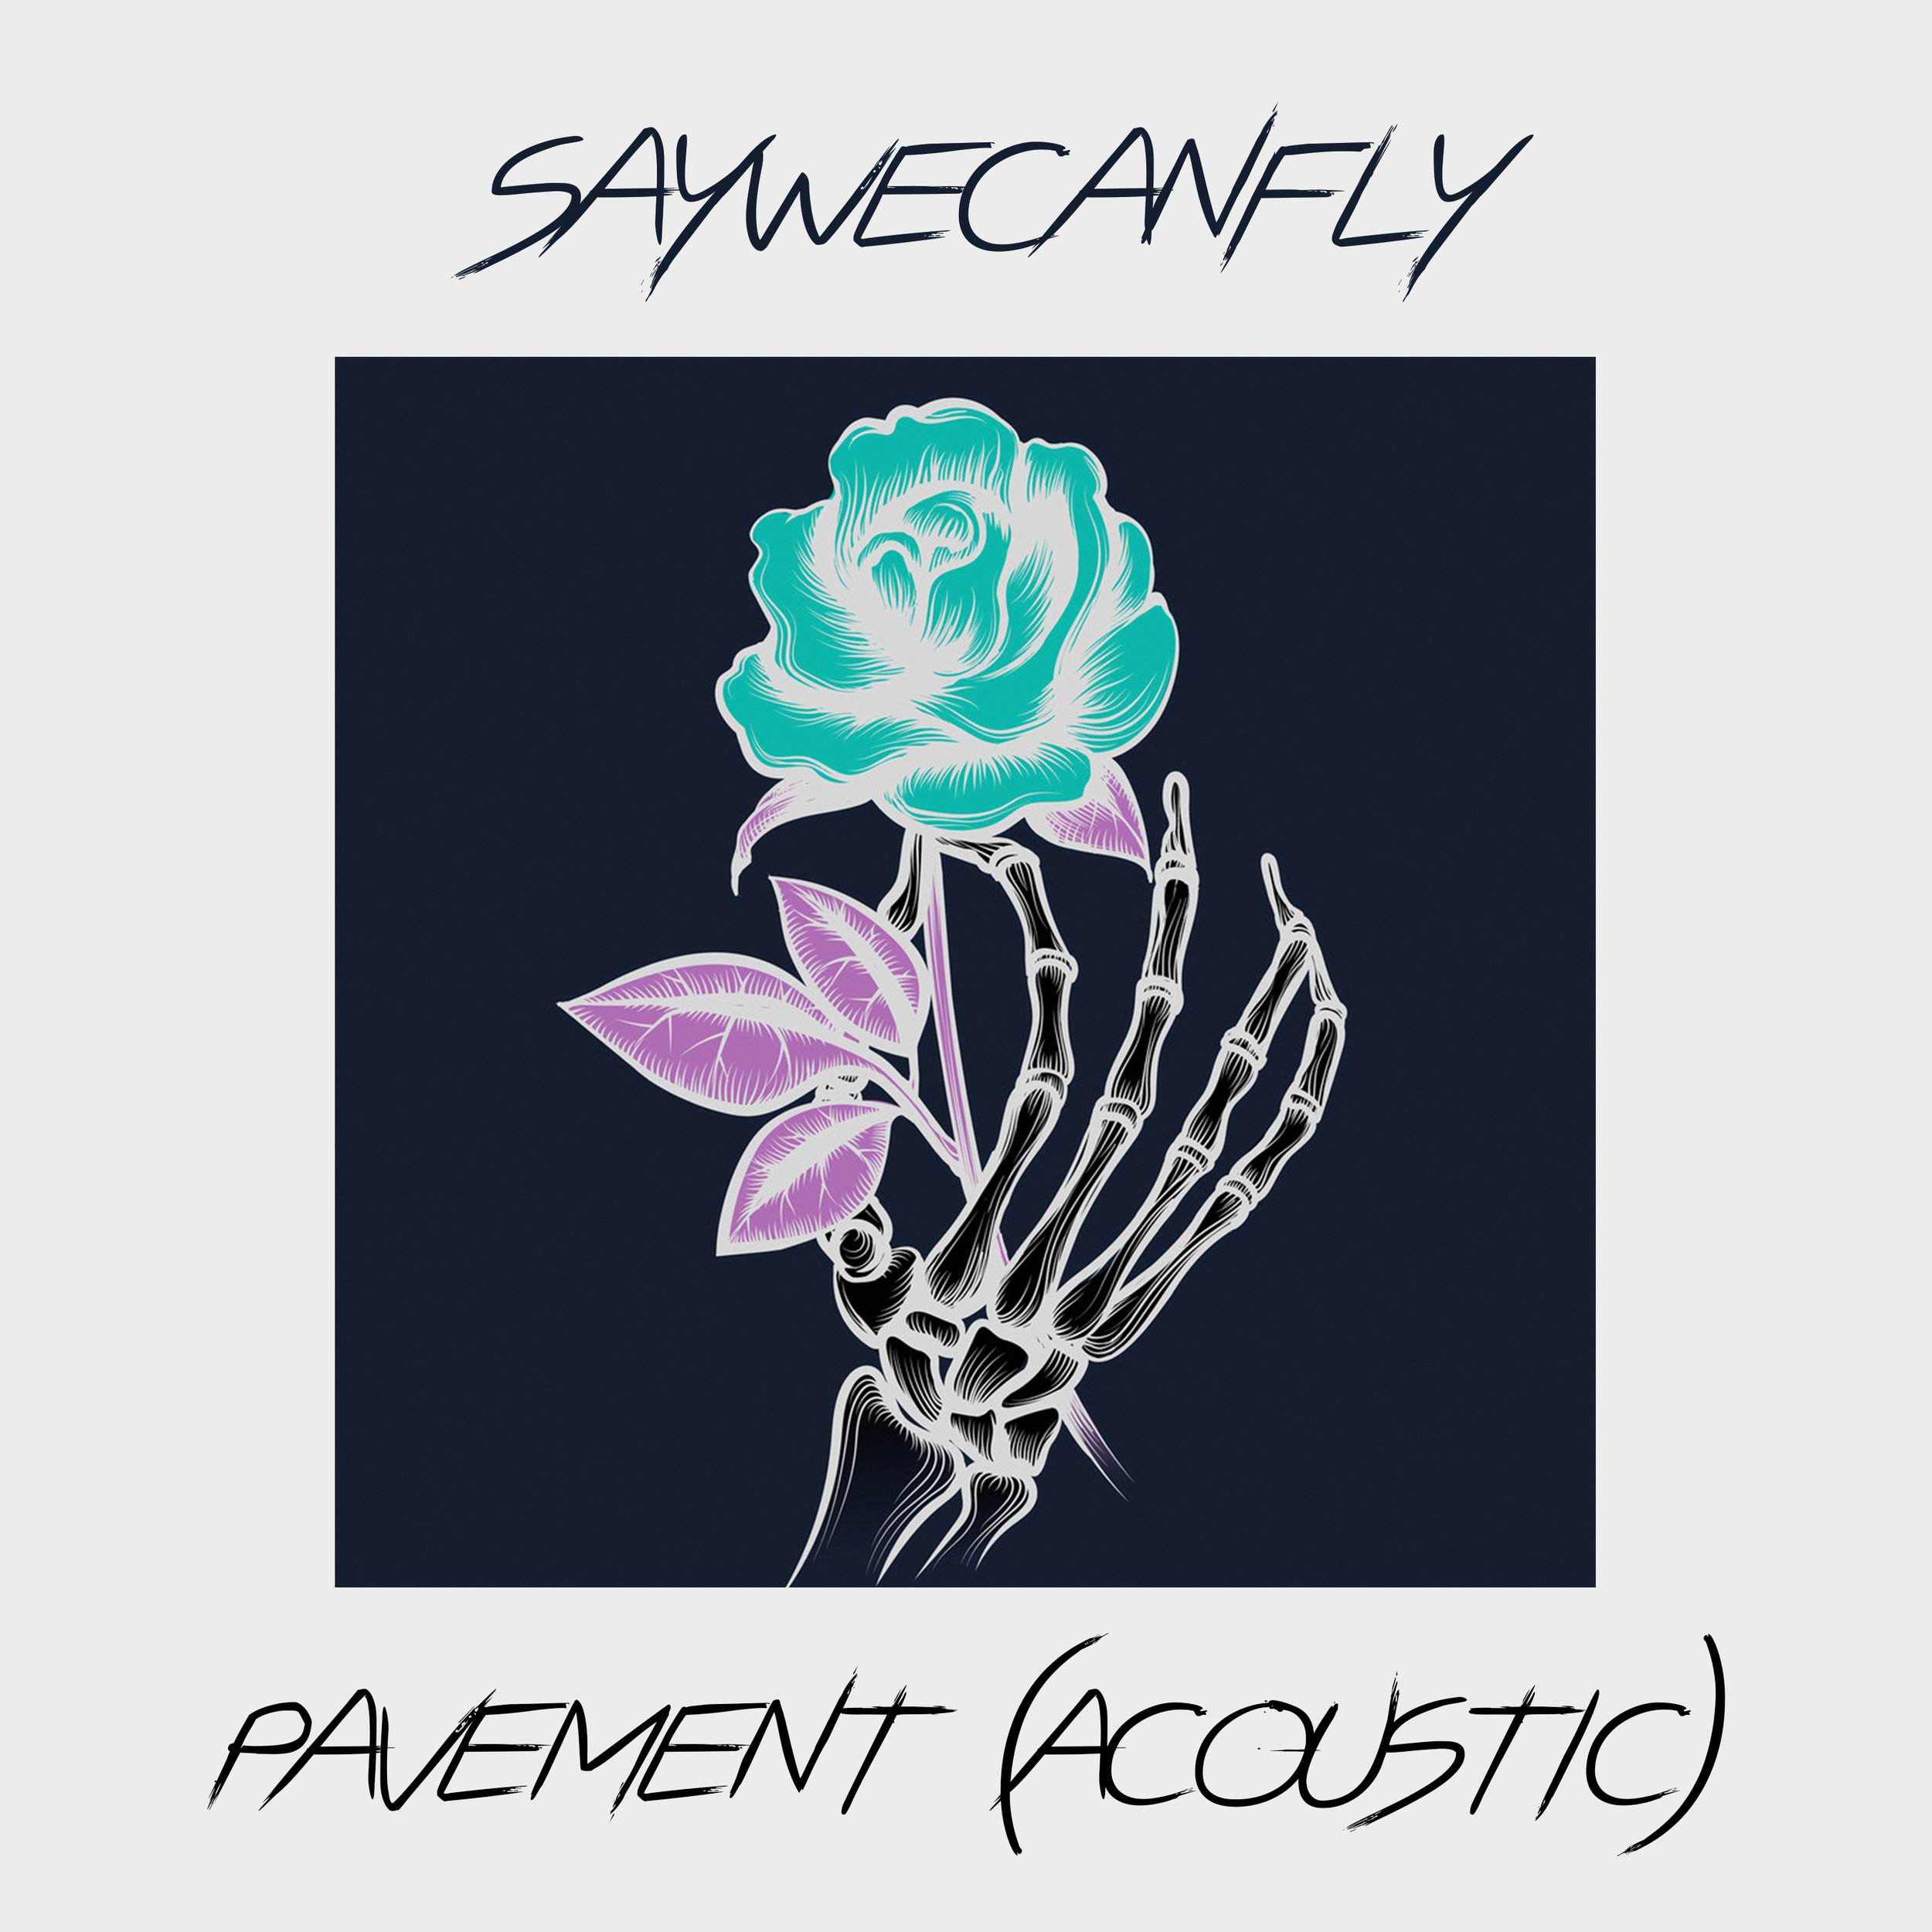 pavement acoustic.jpg